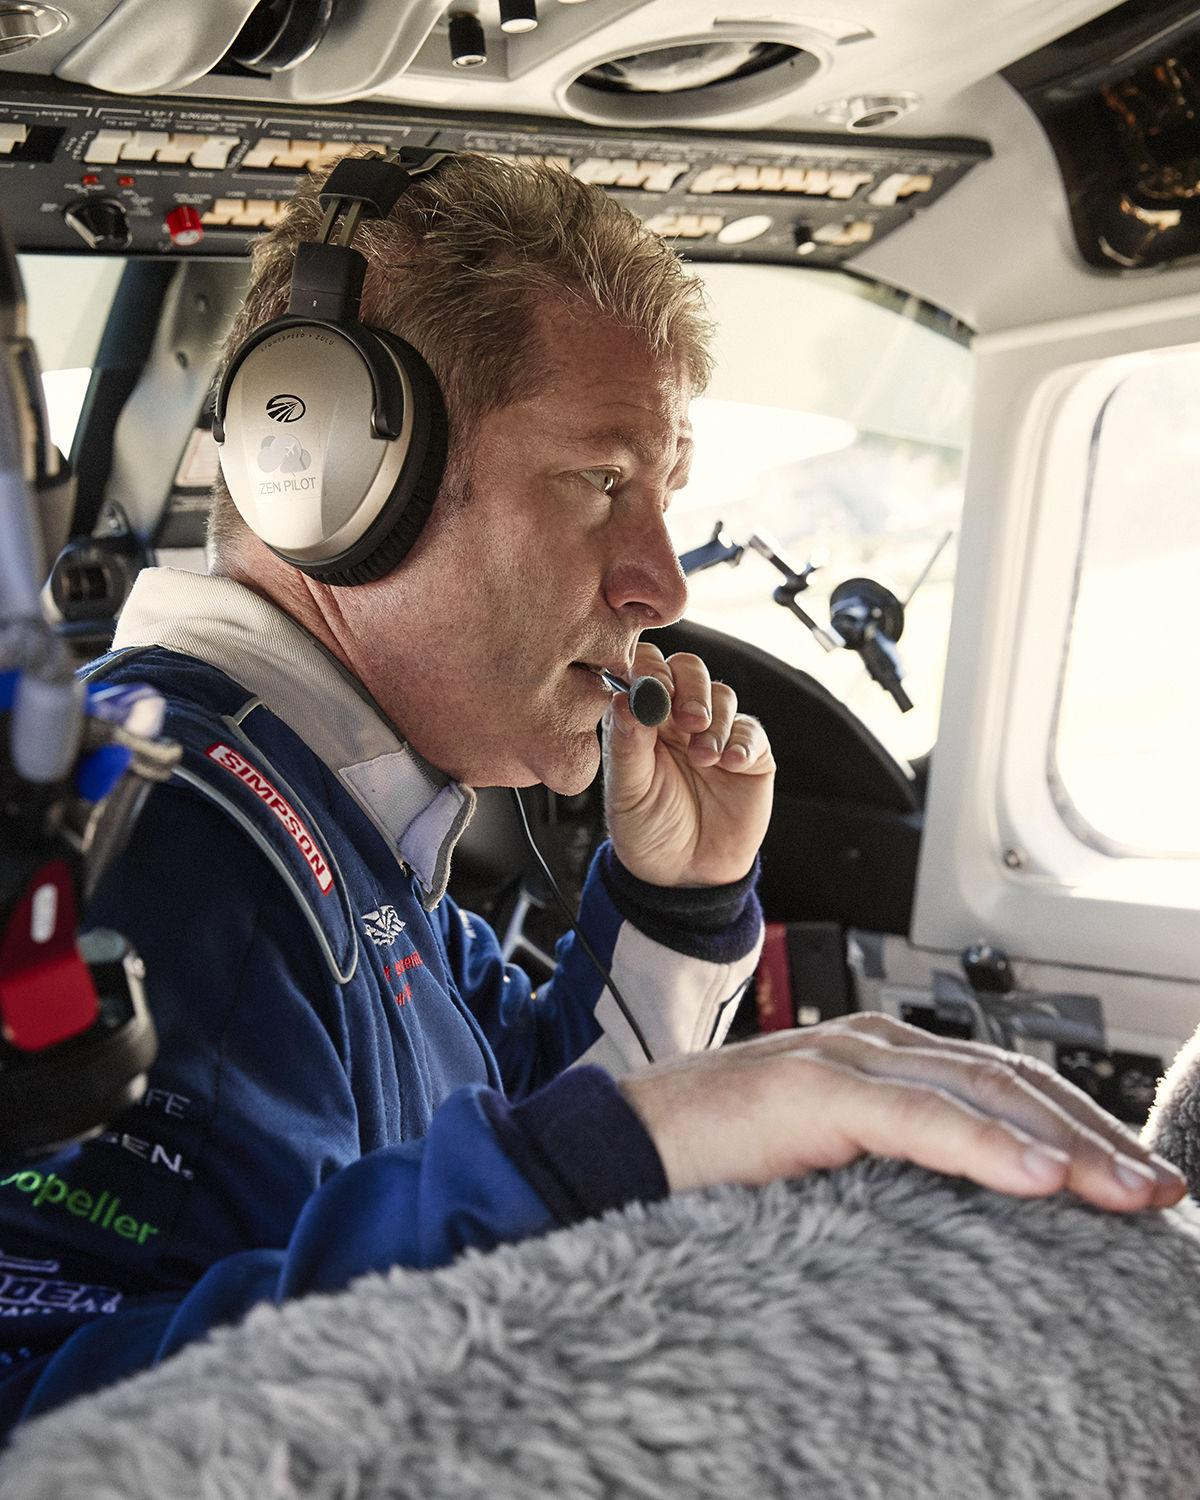 Pole to Pole Pilot – Robert in Plane